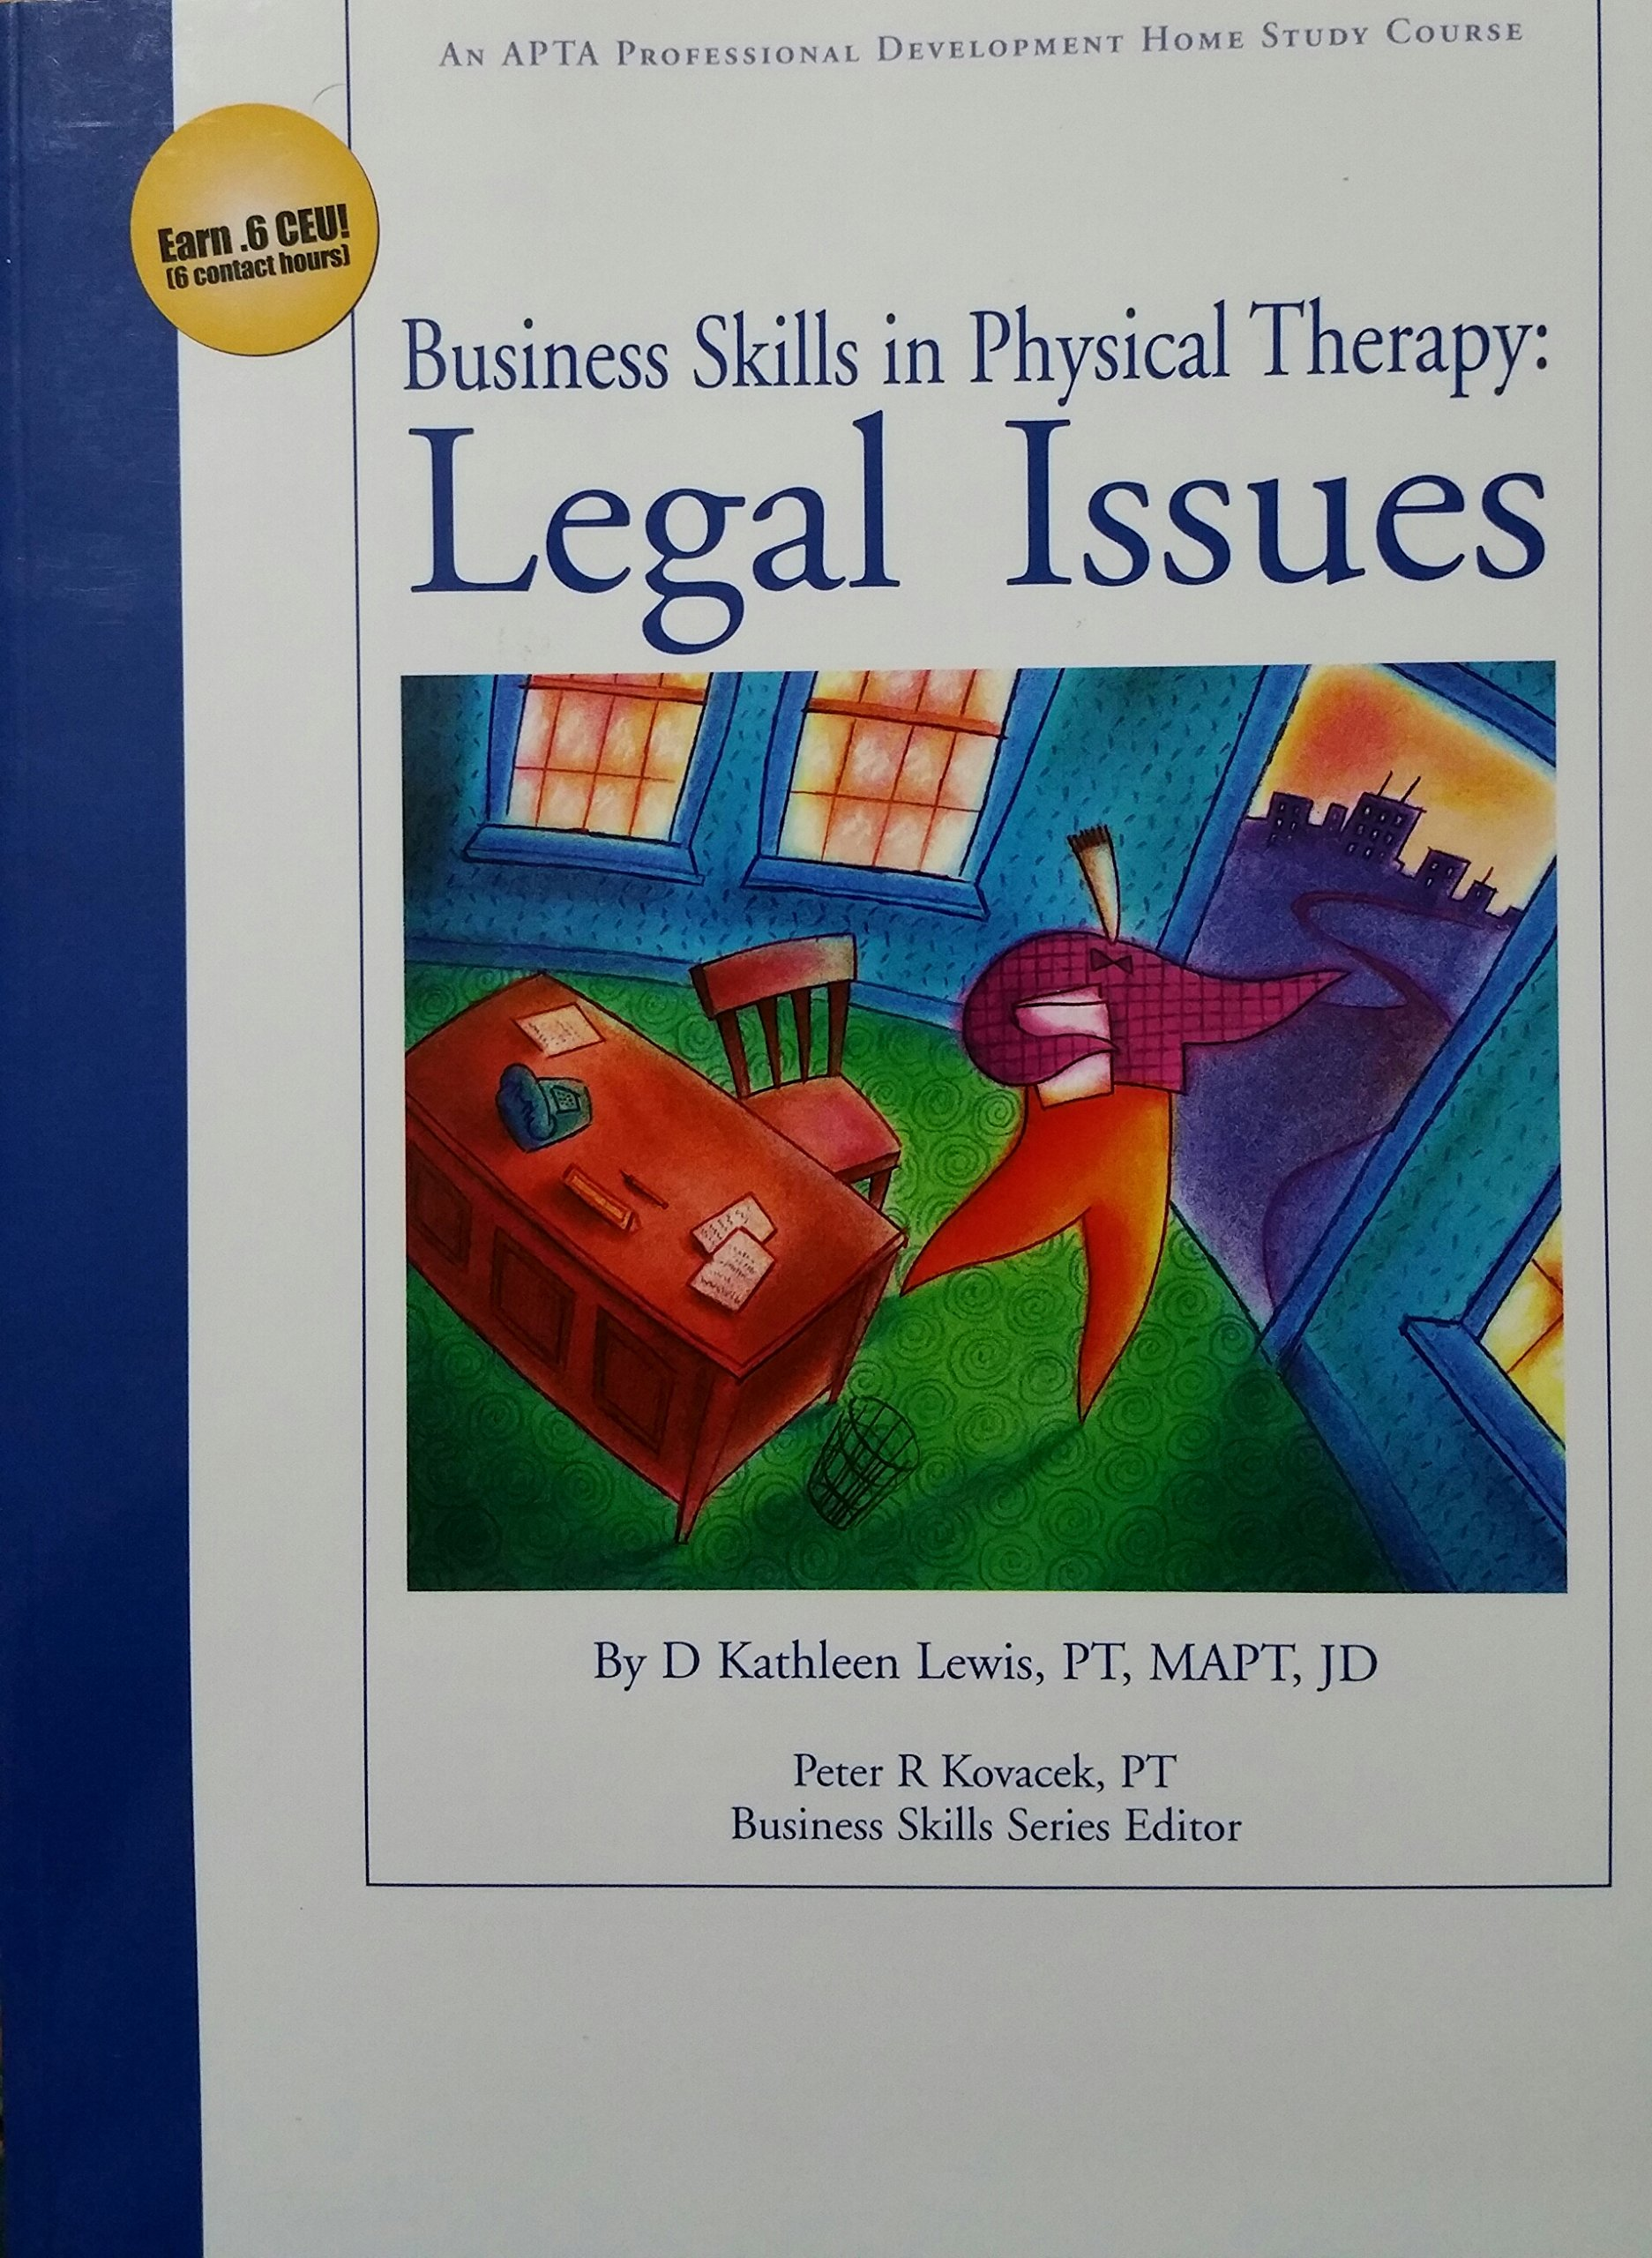 Home study course for physical therapy - Business Skills In Physical Therapy Legal Issues Pt Mapt Jd By D Kathleen Lewis 9781931369053 Amazon Com Books